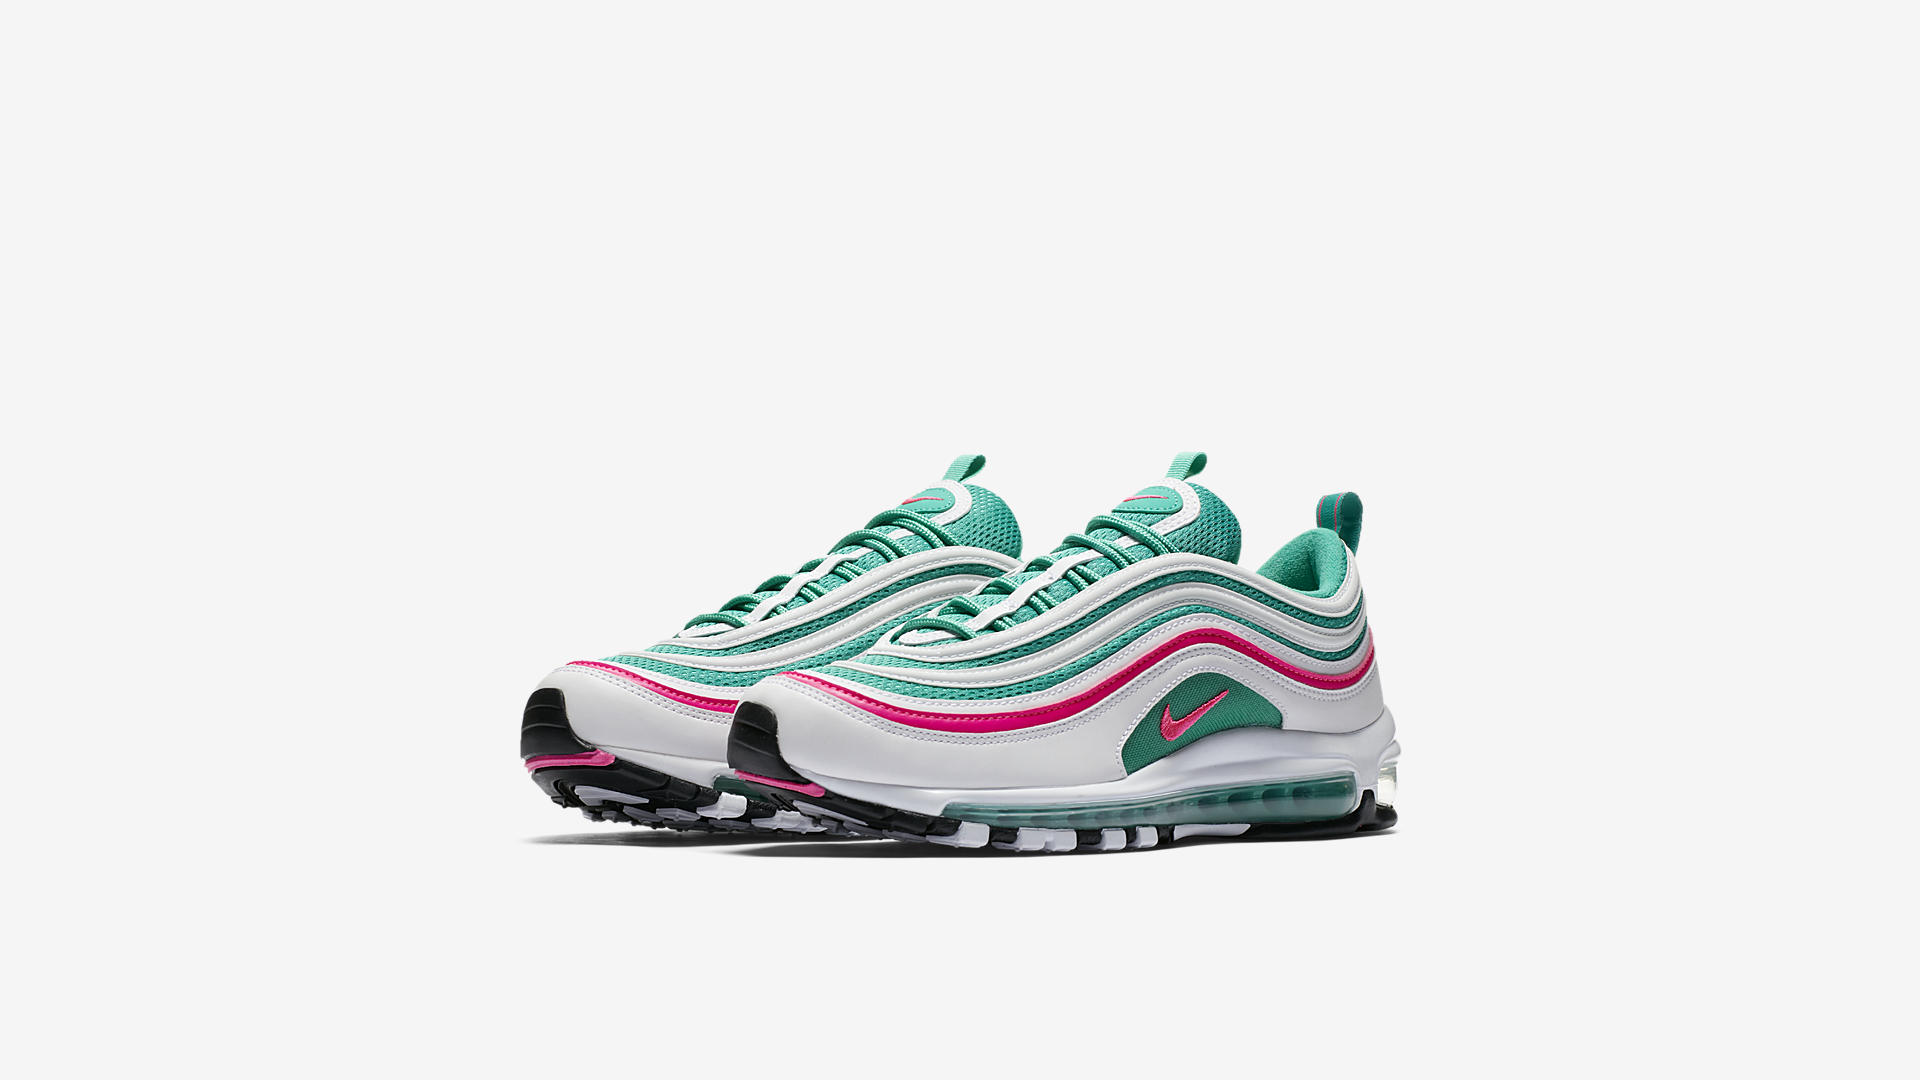 921826 102 Nike Air Max 97 Watermelon 1